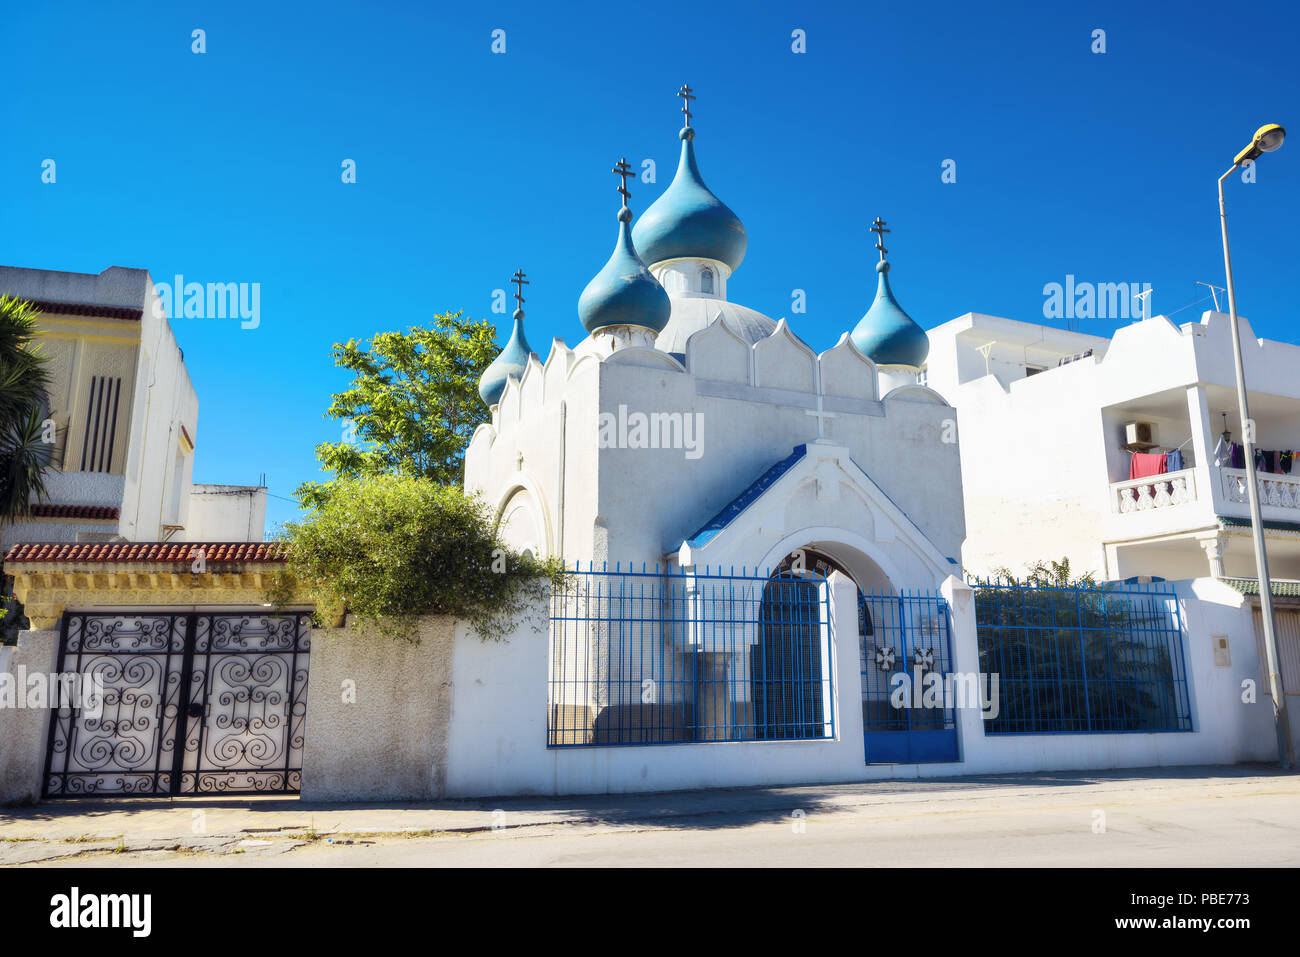 Historic small Russian orthodox church located at district of Bizerte. Tunisia, North Africa - Stock Image